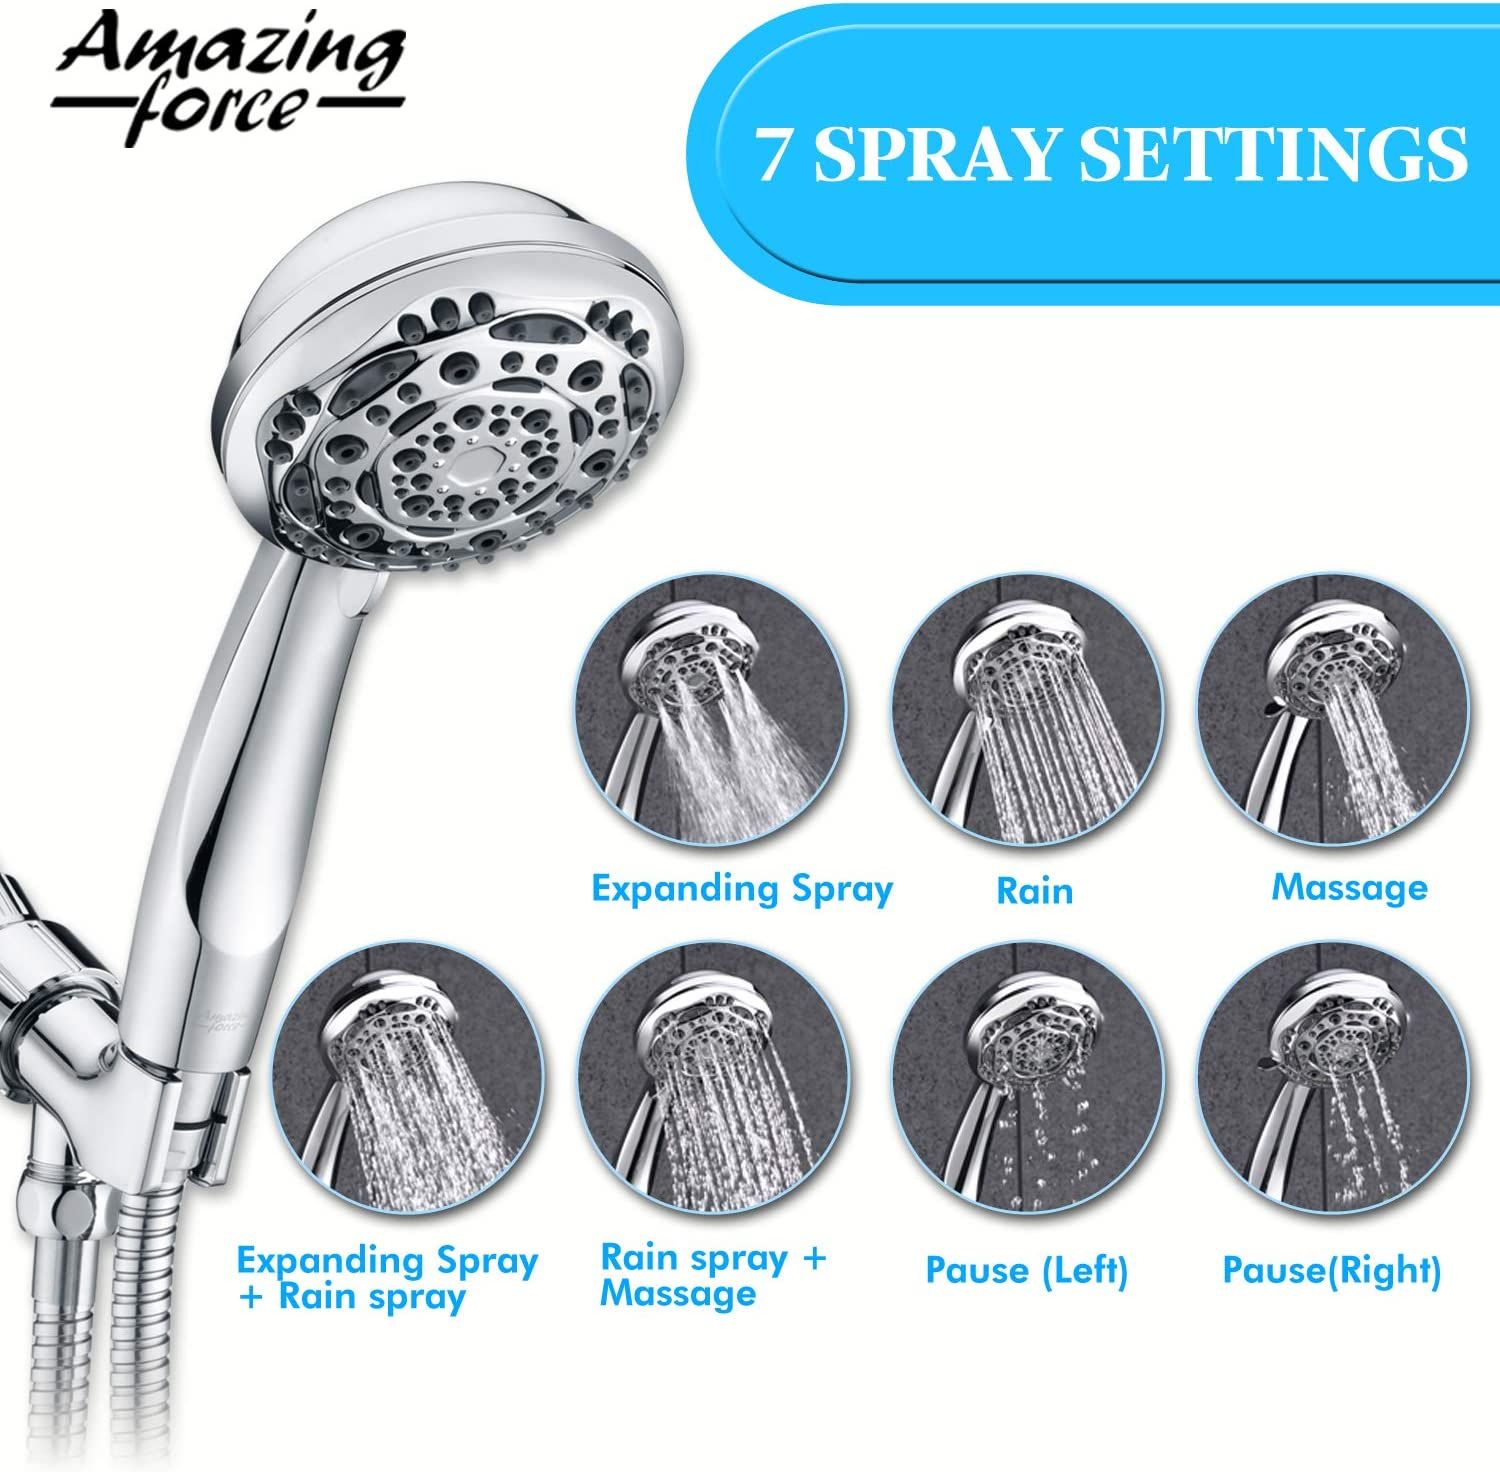 6 feet Black Amazing Force High Pressure Handheld Shower Head with 7 Spray Setting Massage Spa Showerhead with Adjustable Suction Cup and Bracket 4 Handheld Shower Heads with Extra Long Hose 71 inch